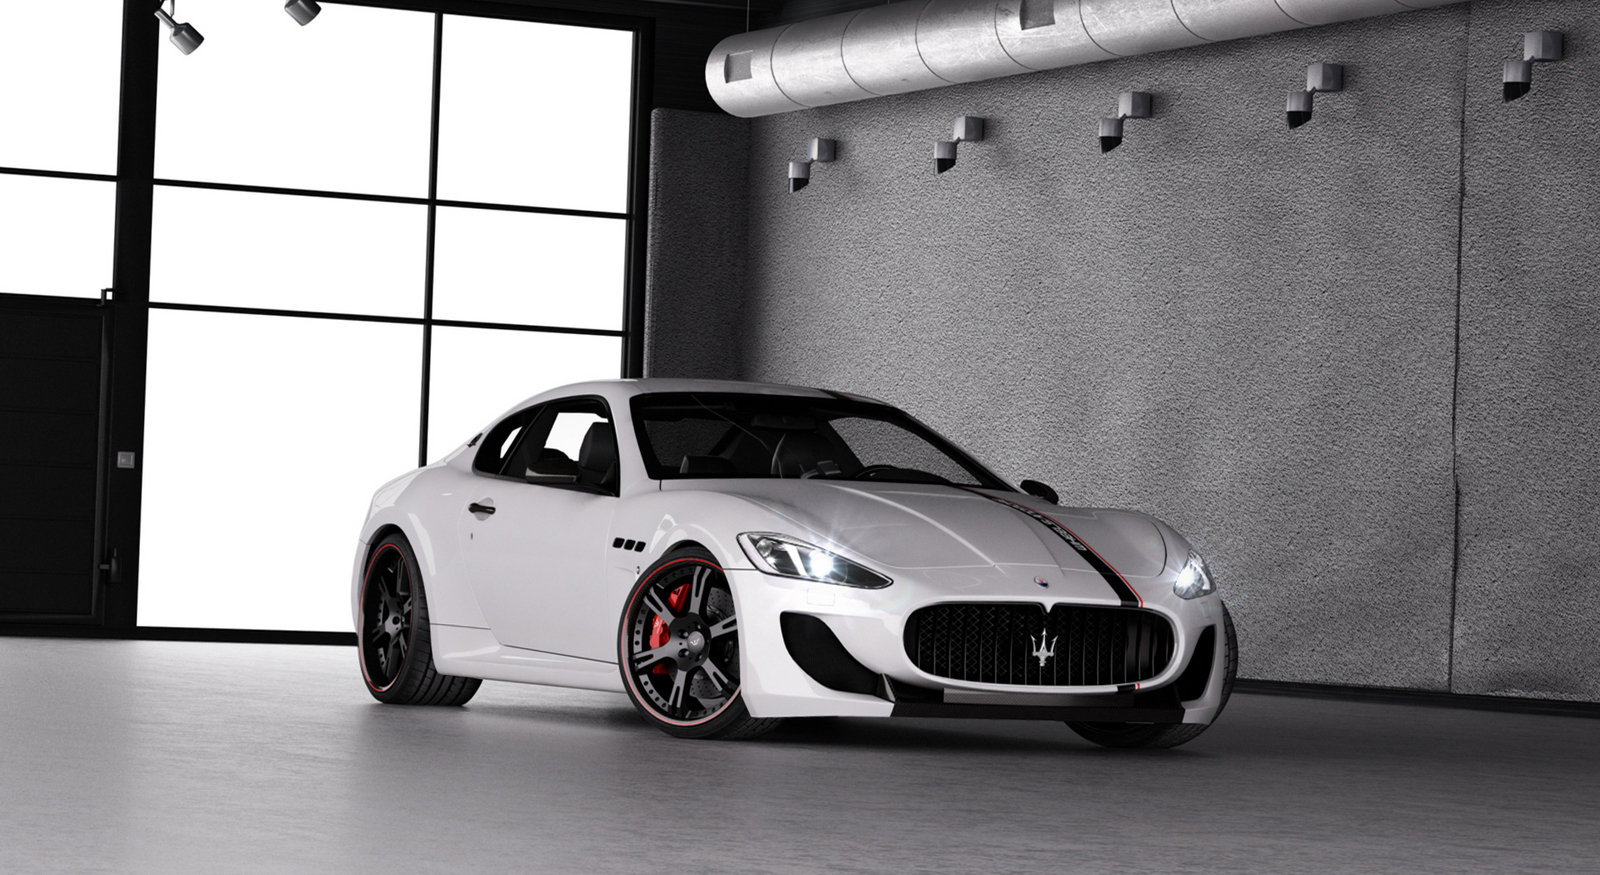 http://pictures.topspeed.com/IMG/crop/201305/maserati-mc-stradale_1600x0w.jpg